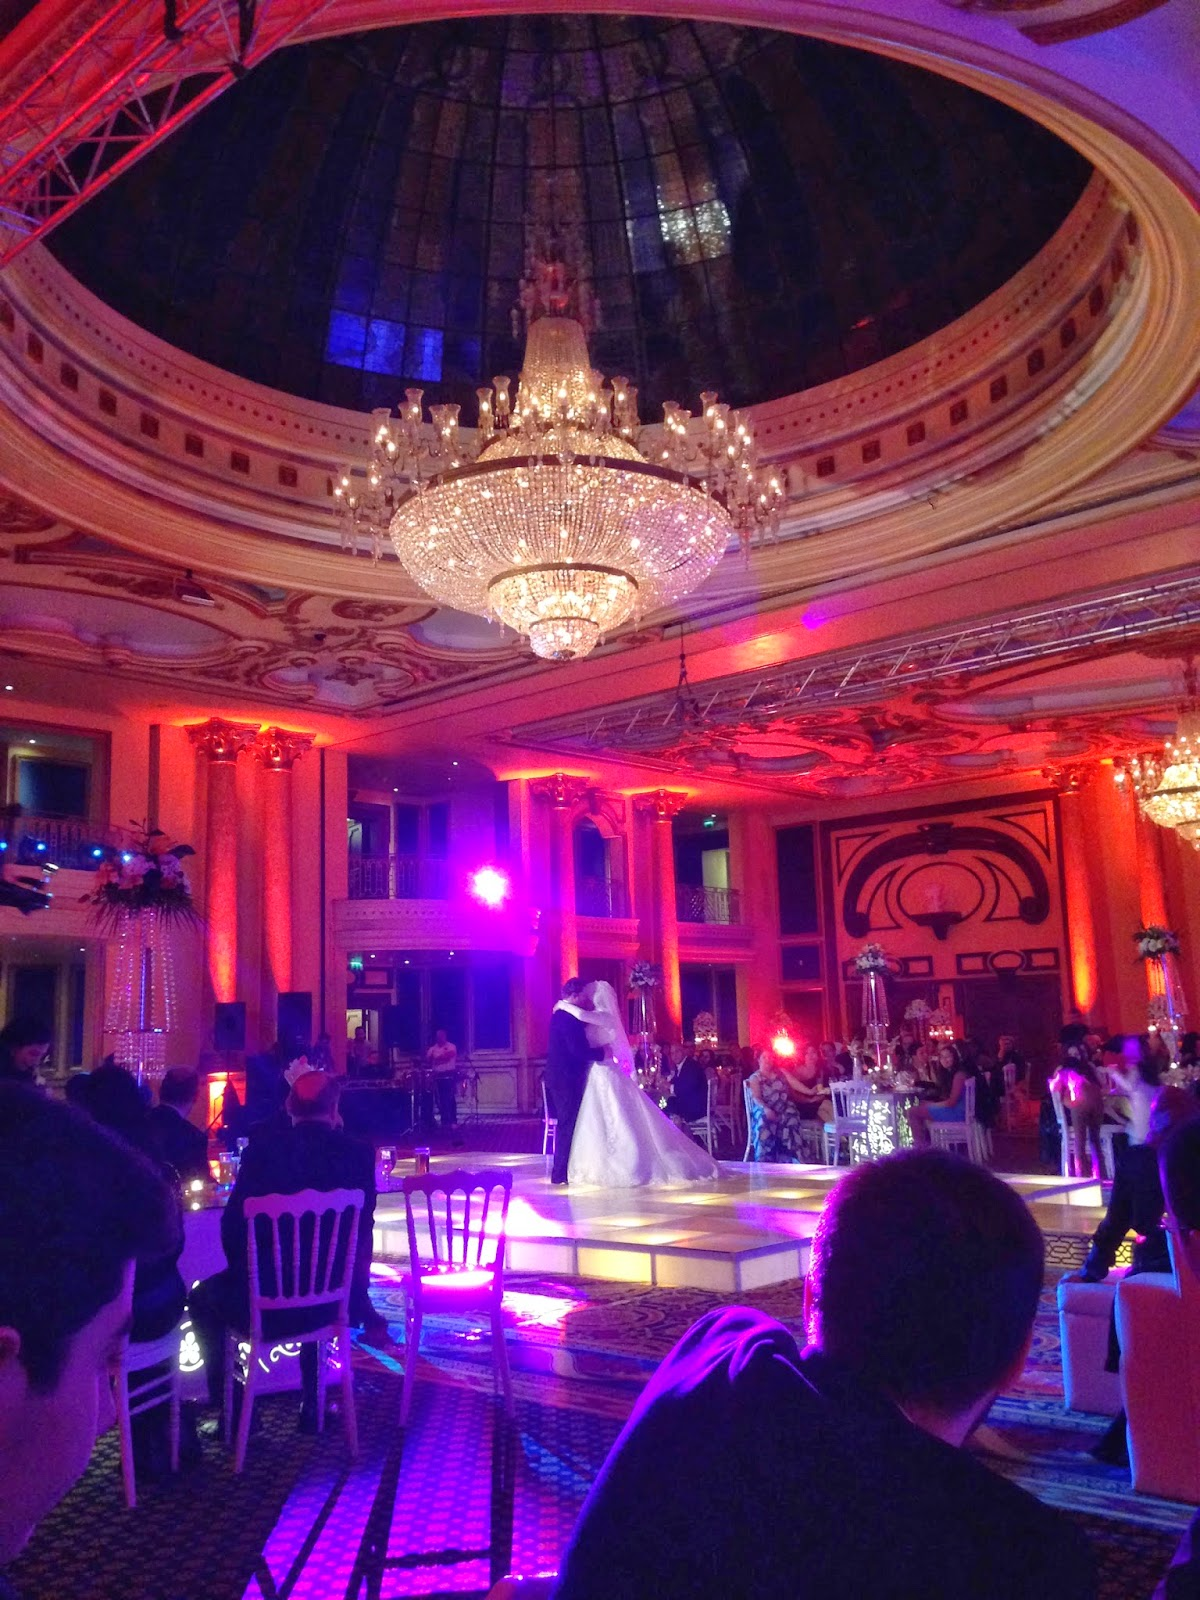 My Cousin's Wedding: What Happens at a Jordanian Wedding